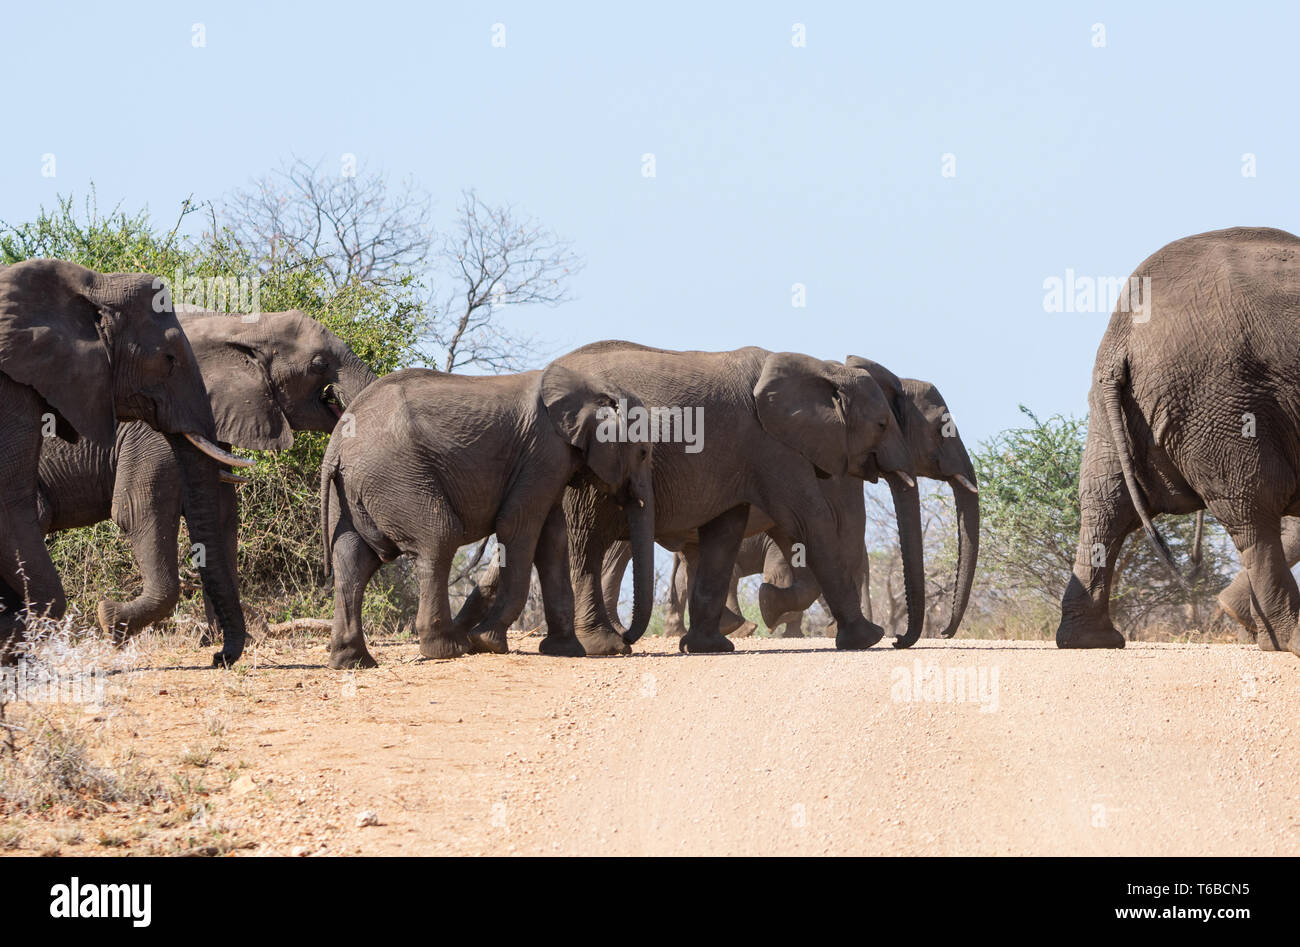 A herd of Elephants crossing a dirt track in Southern African savanna Stock Photo